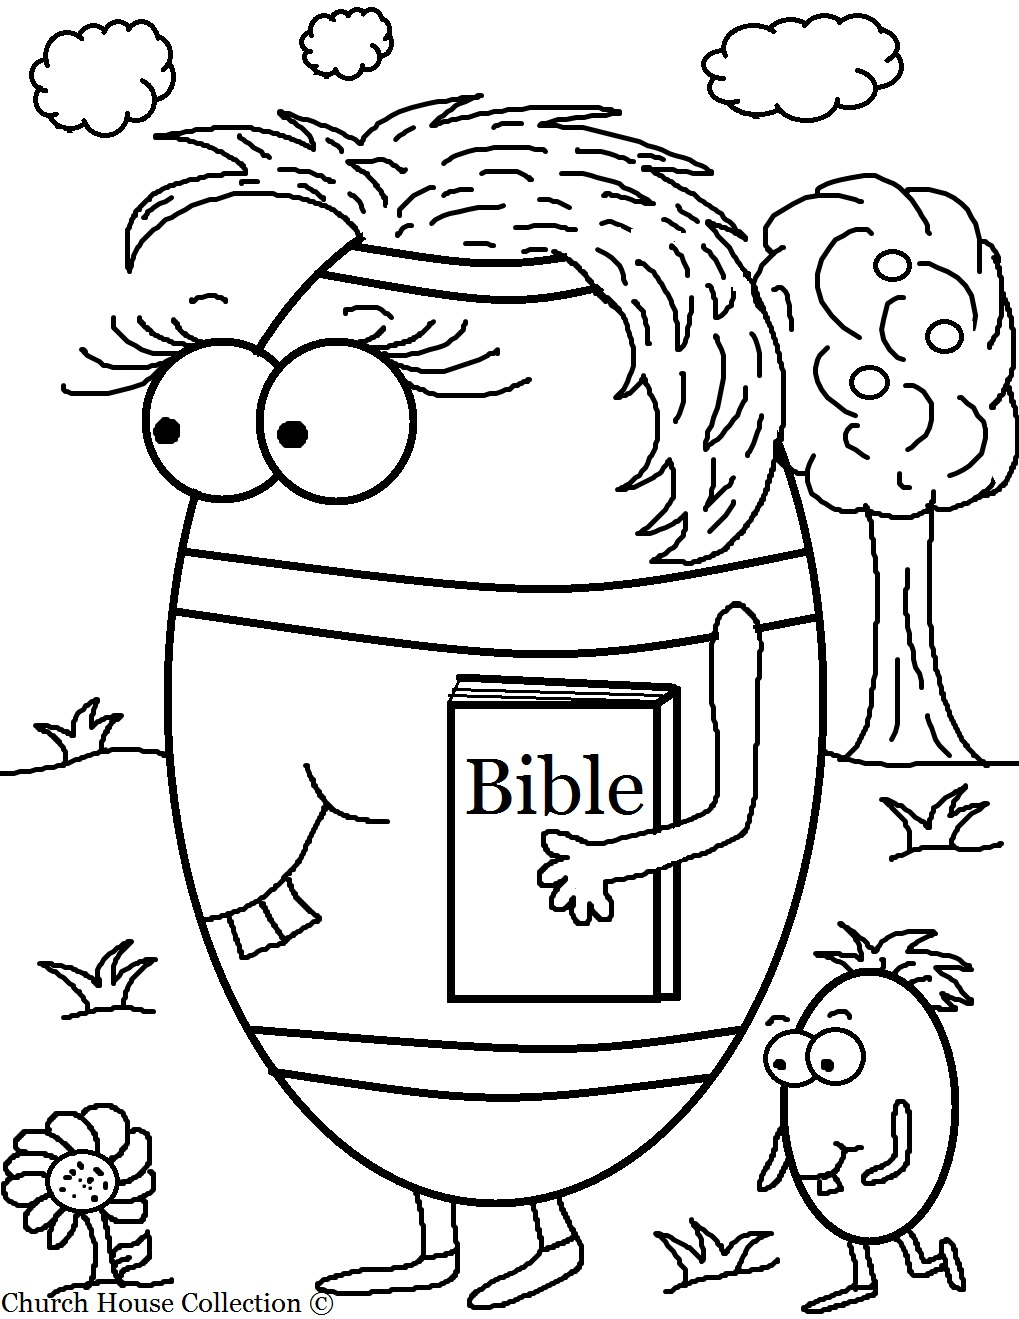 Thanksgiving Bible Printables & Crafts - Christian Preschool ... | 1319x1019